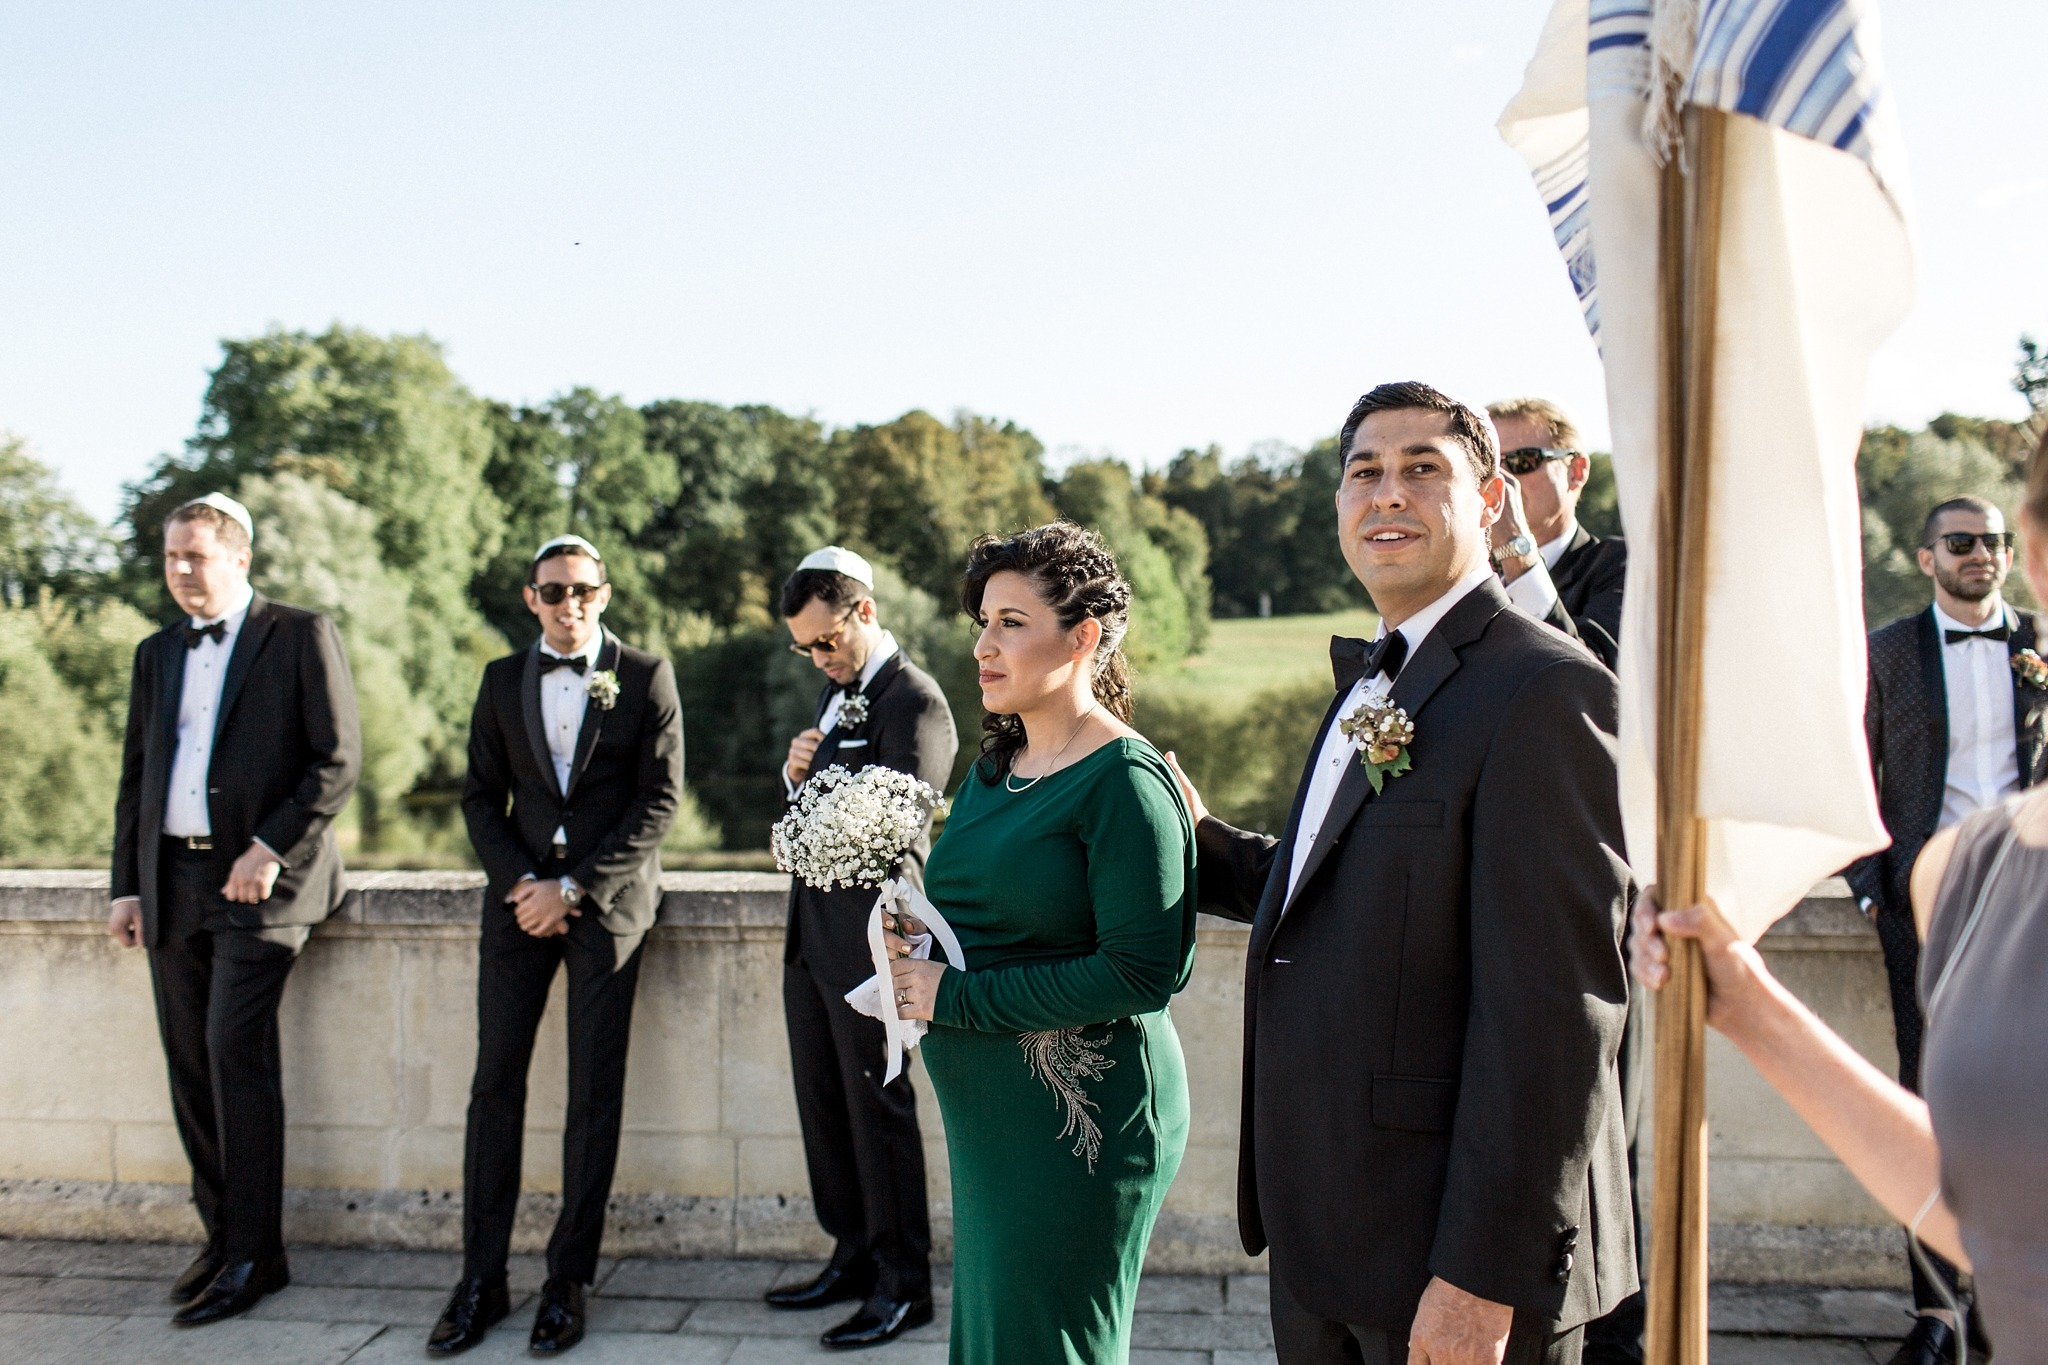 chateau-wedding-france-chanel-eric-as-seen-on-vogue-with-sarah-falugo-photographer_0089